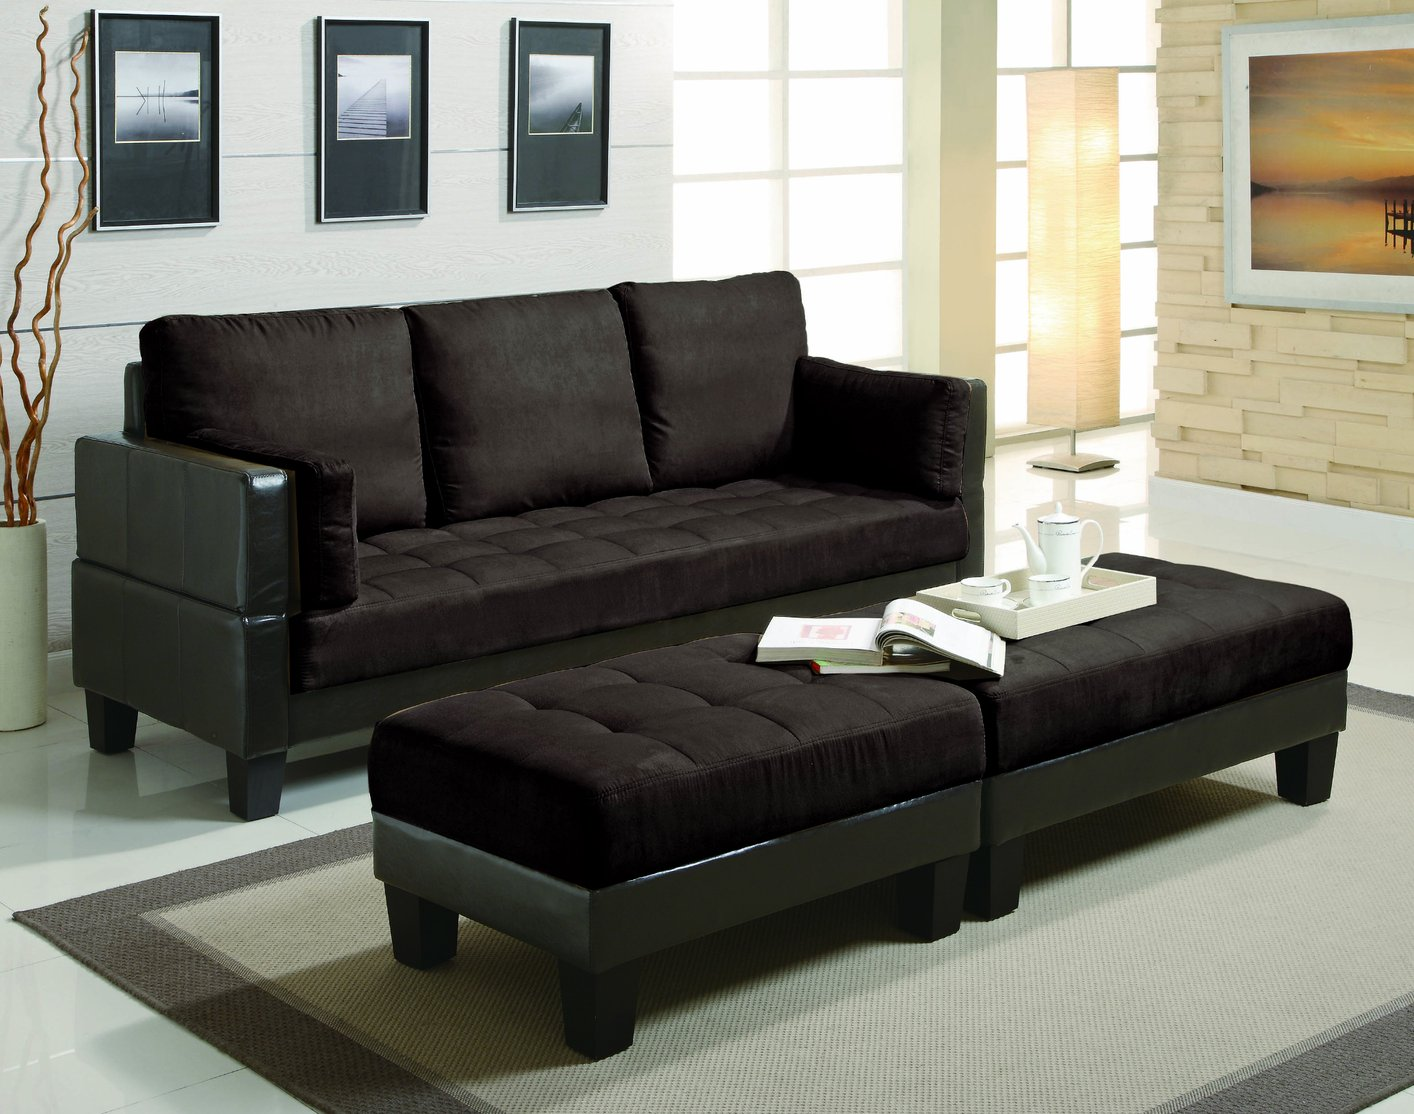 Sahara Traditional Style Sofa Set as well Id F 399884 also Vendome Traditional Master Bedroom Collection further Leather Sectional Sofa With Power Recliner together with A Wabi Sabi Ski Chalet In Aspen Colorado. on leather sectional sofa los angeles